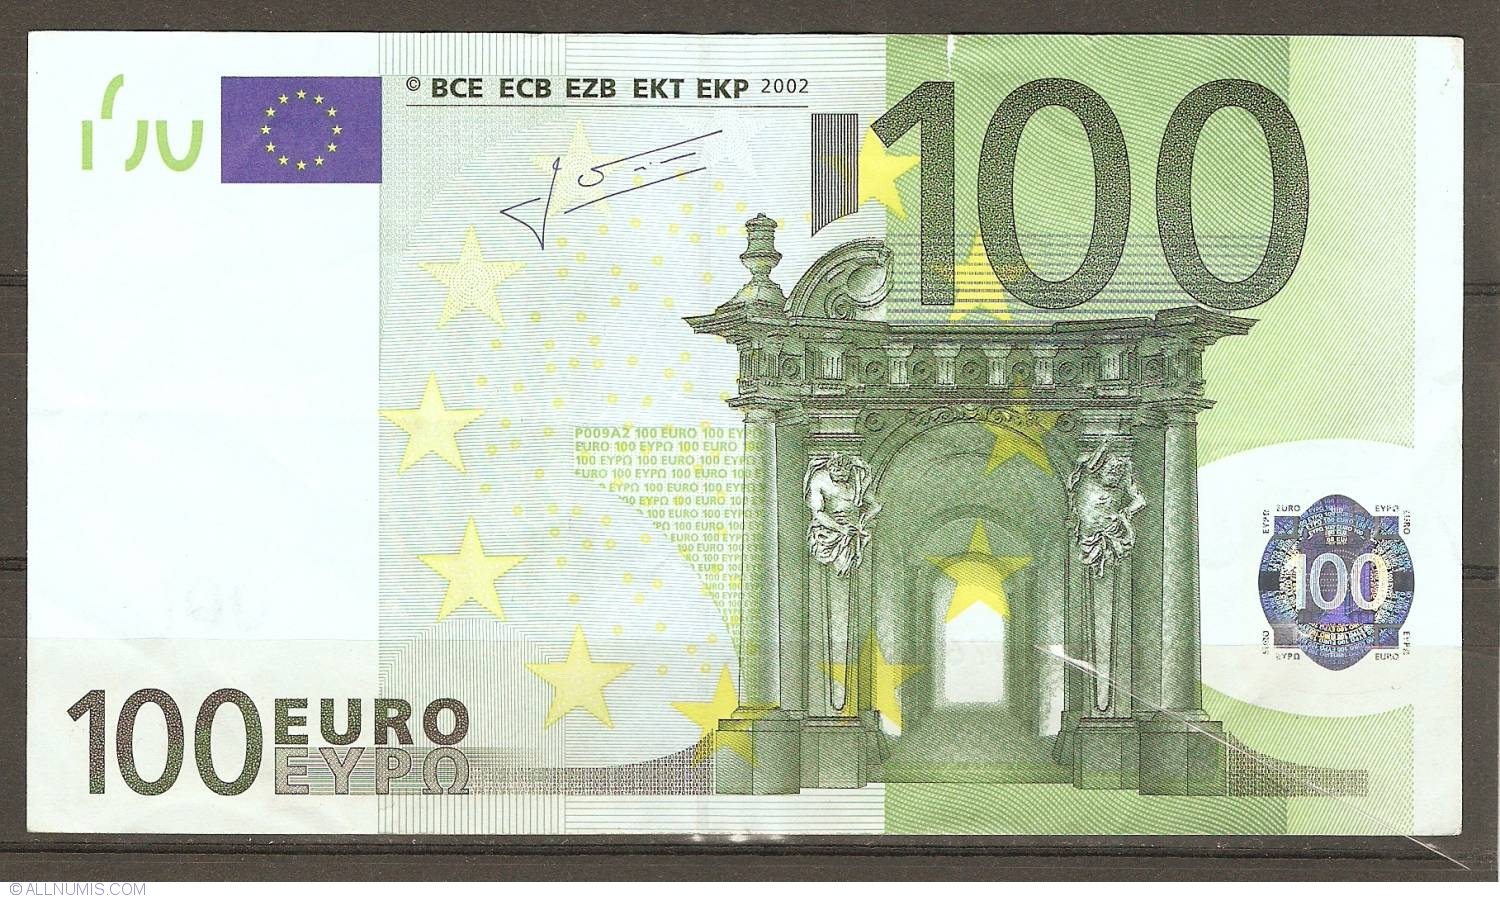 100 euro 2002 x germany 2002 issue 100 euro signature jean claude trichet european. Black Bedroom Furniture Sets. Home Design Ideas